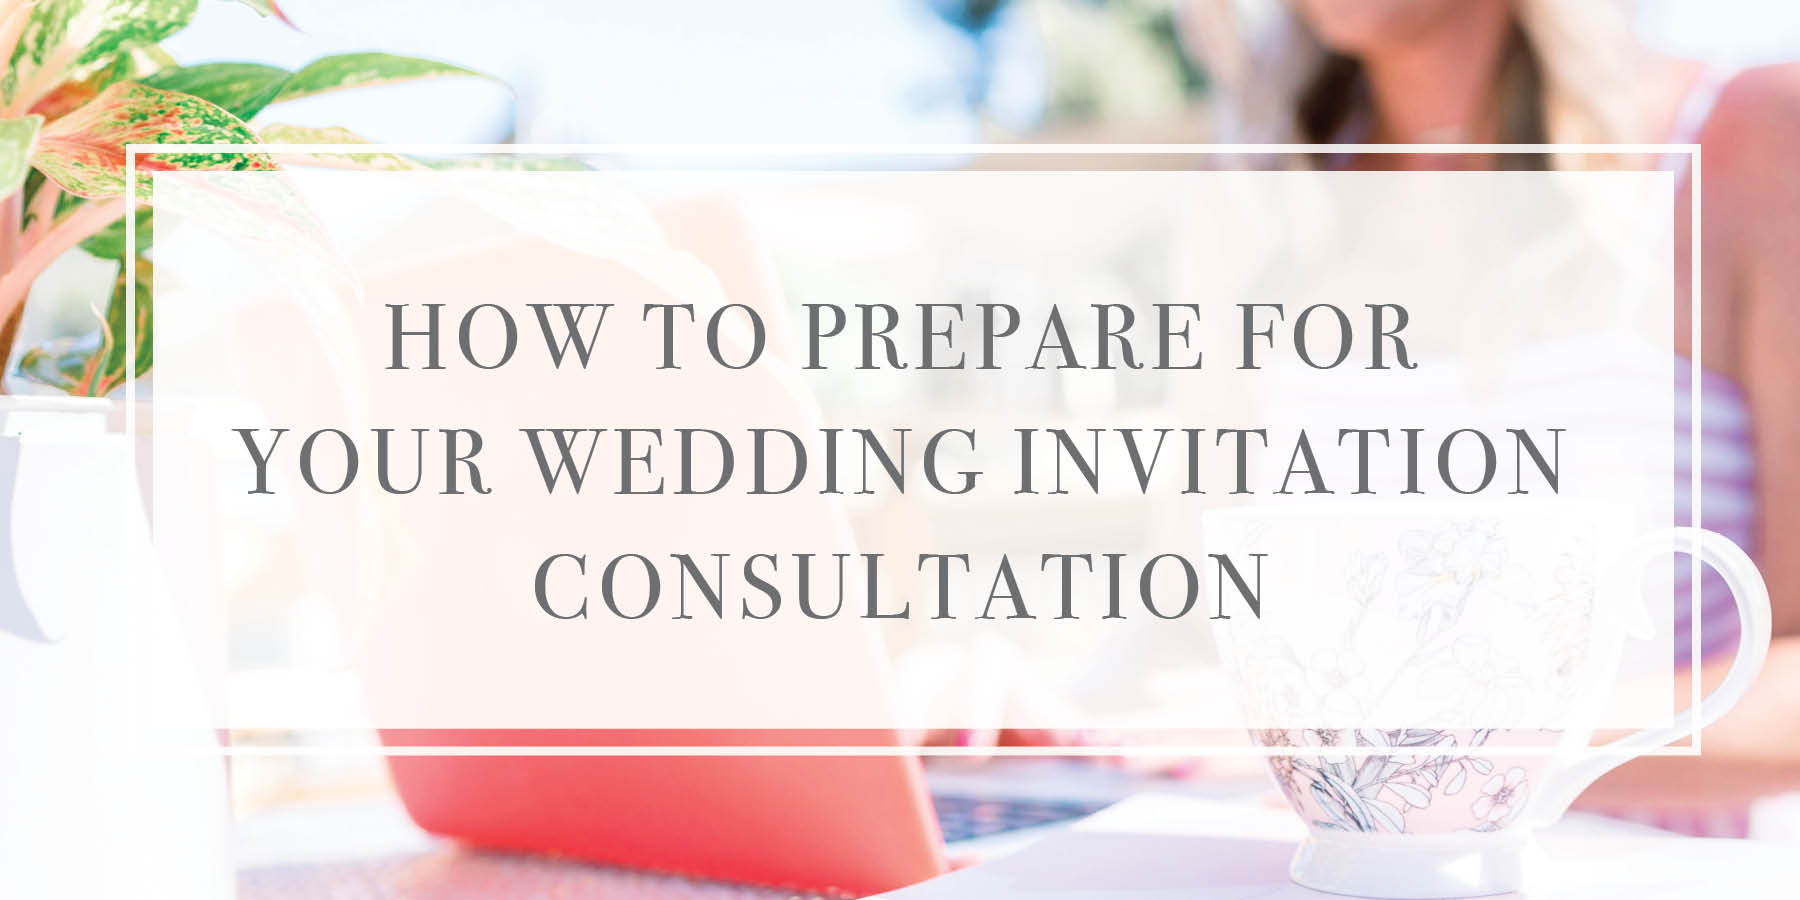 How to Prepare for a Wedding Invitation Consultation